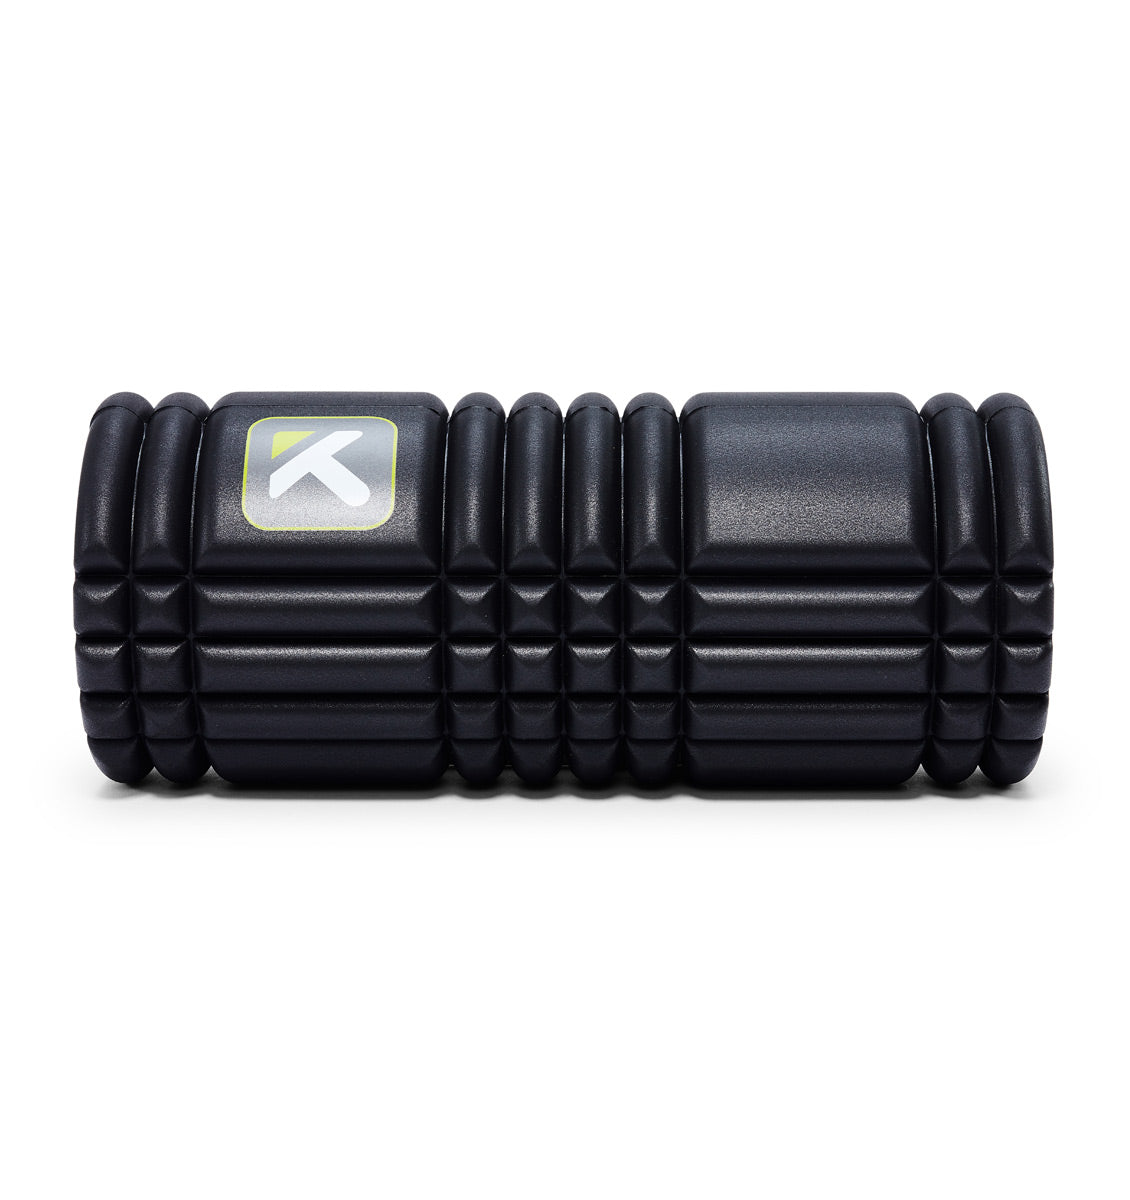 TPT3GRDBWS00000 TriggerPoint The Grid 1.0 Foam Roller Black - Side